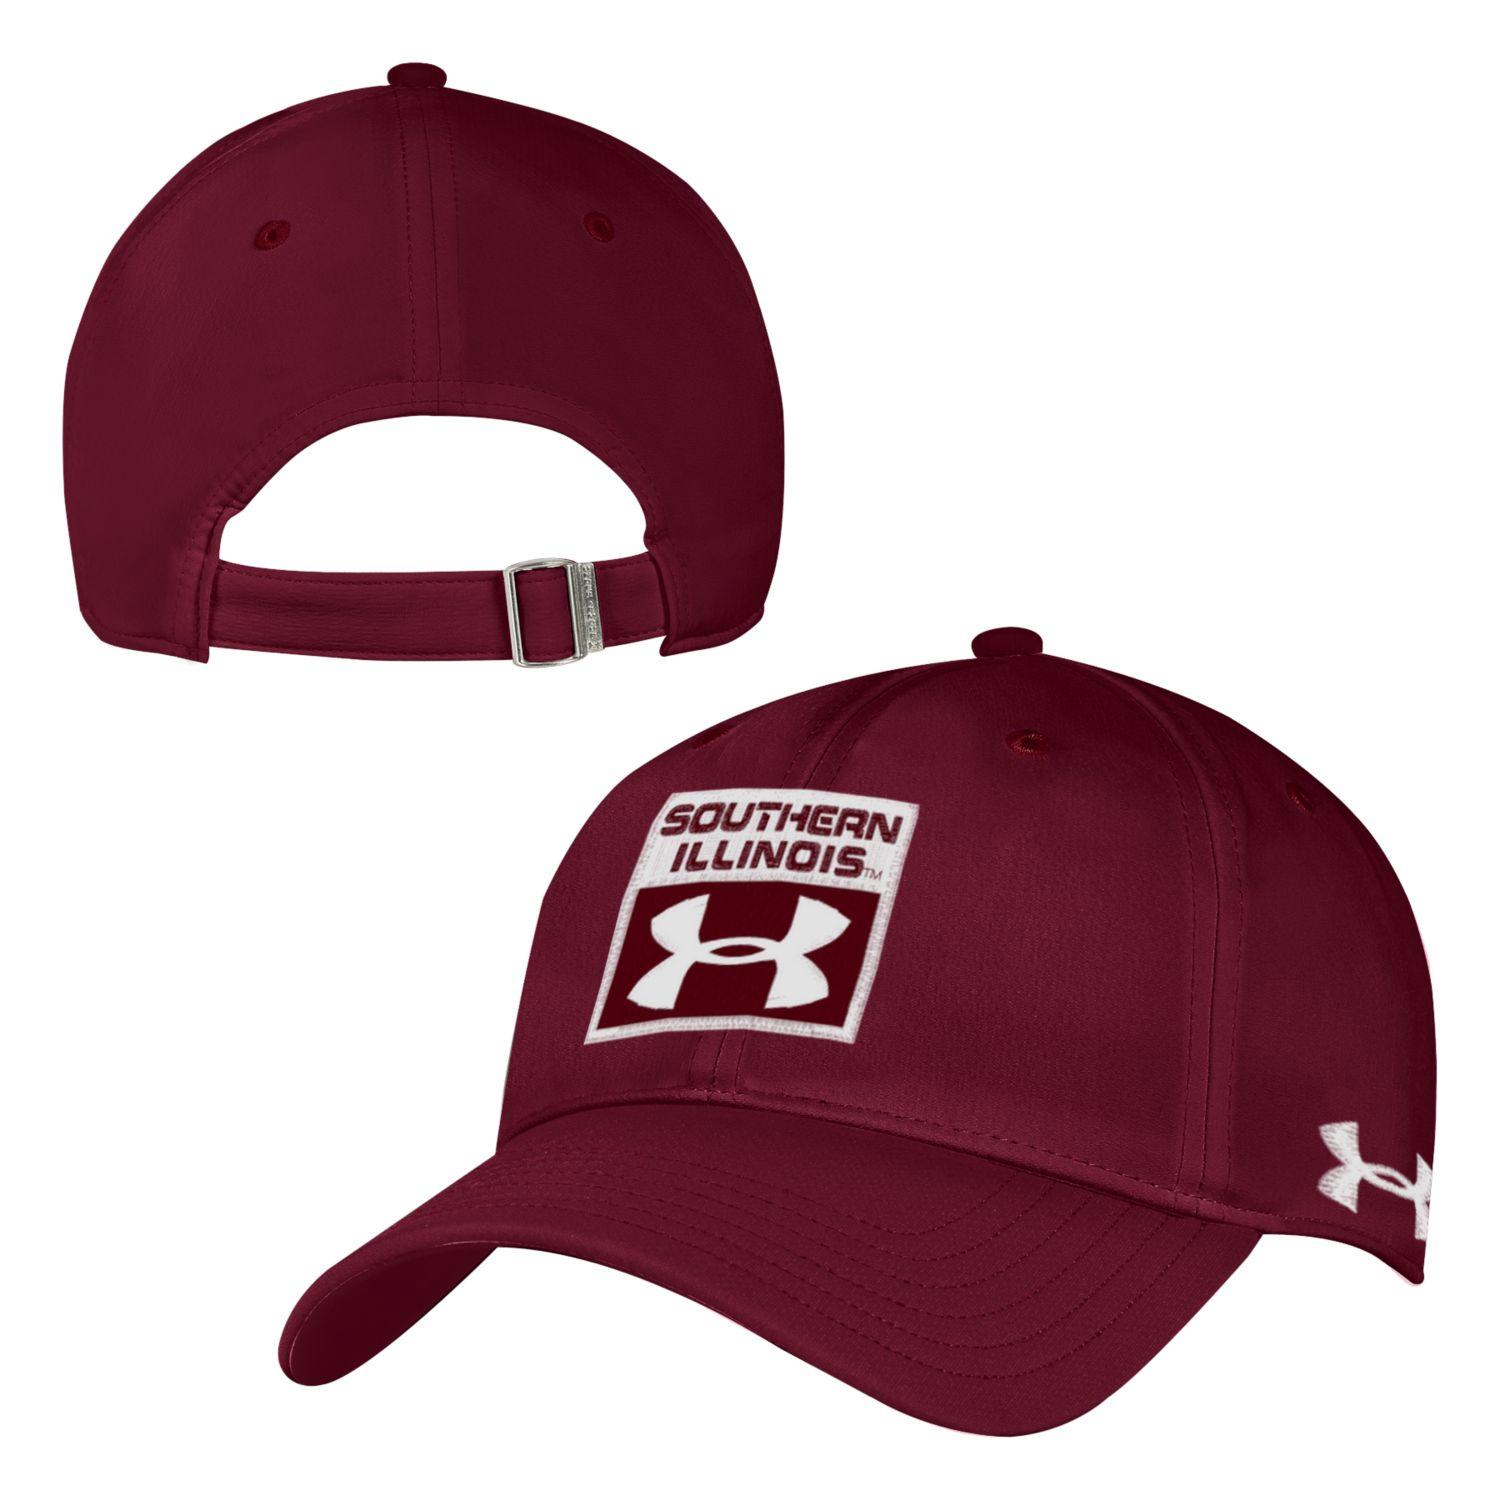 Image for the UA® SOUTHERN ILLINOIS MAROON RENEGADE ADJUSTABLE CAP product